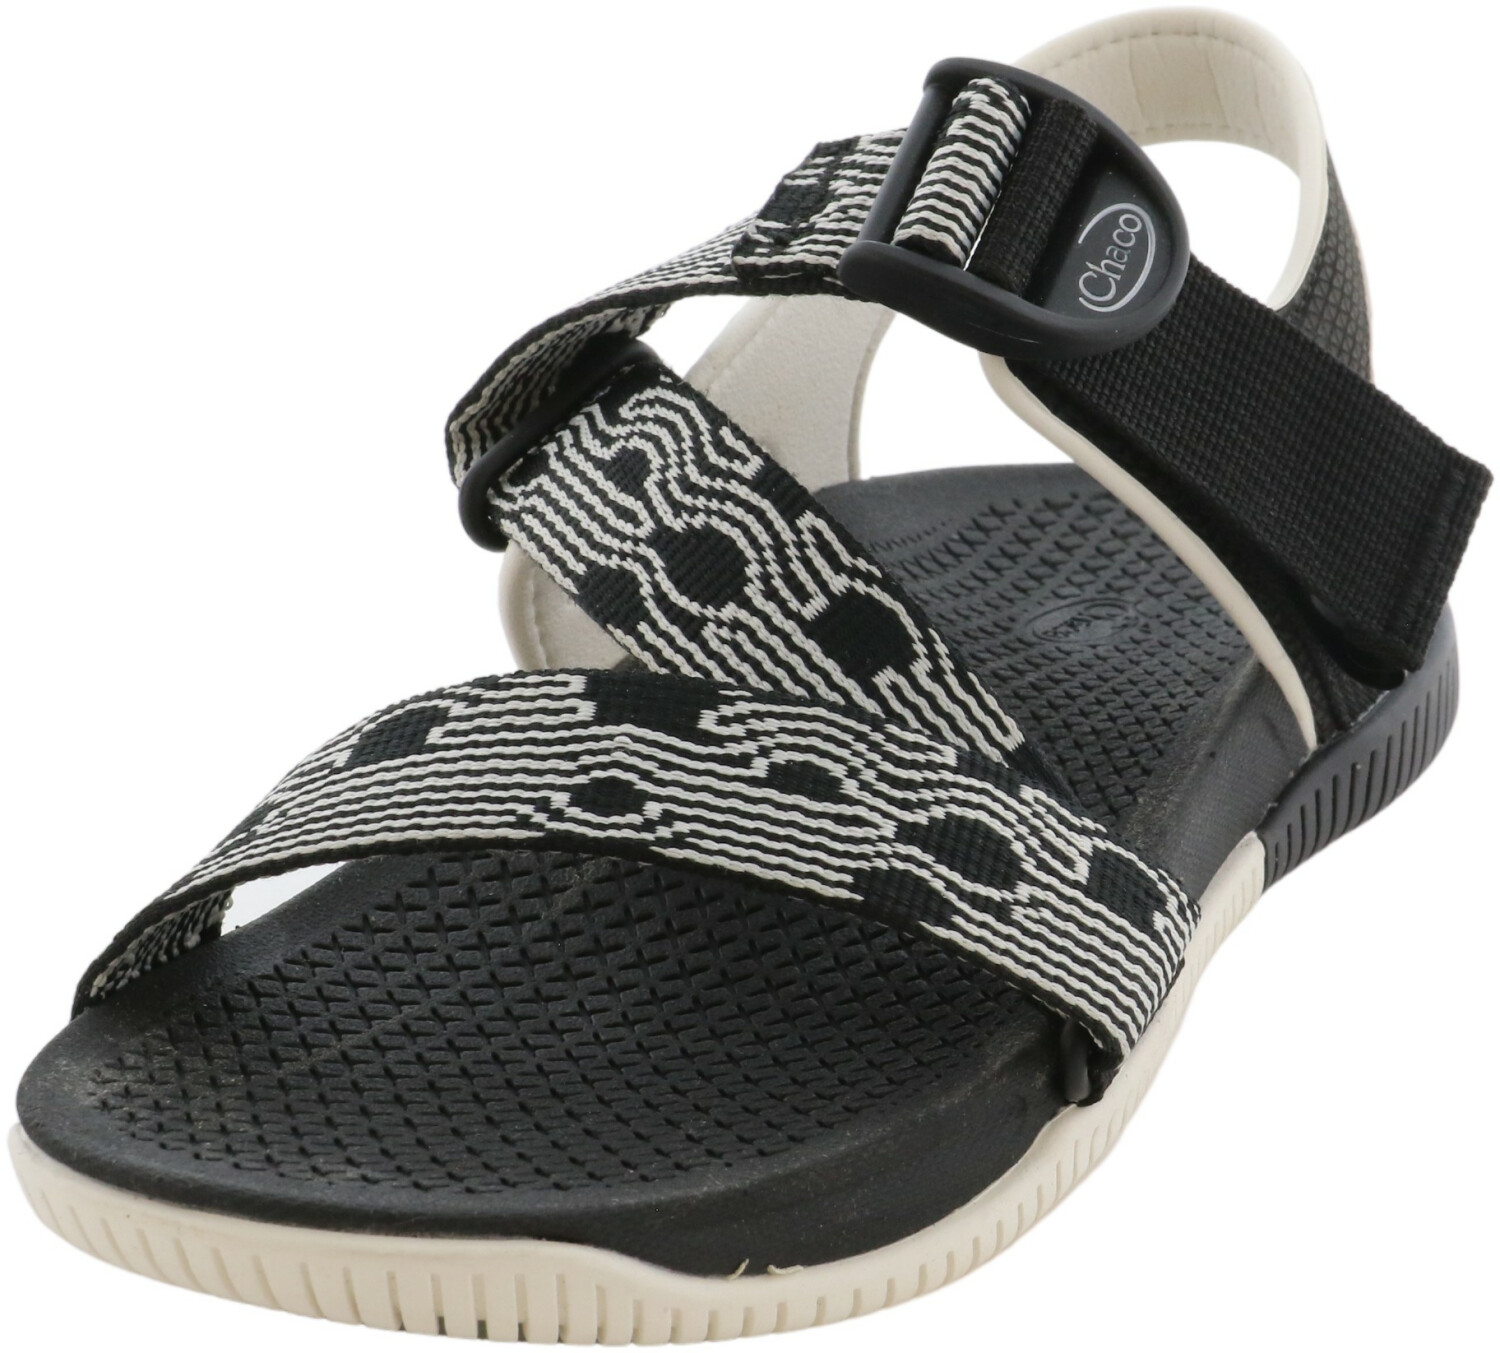 Chaco Women's Confluence Black Ankle-High Polyester Sport Sandals & Slide - 7M